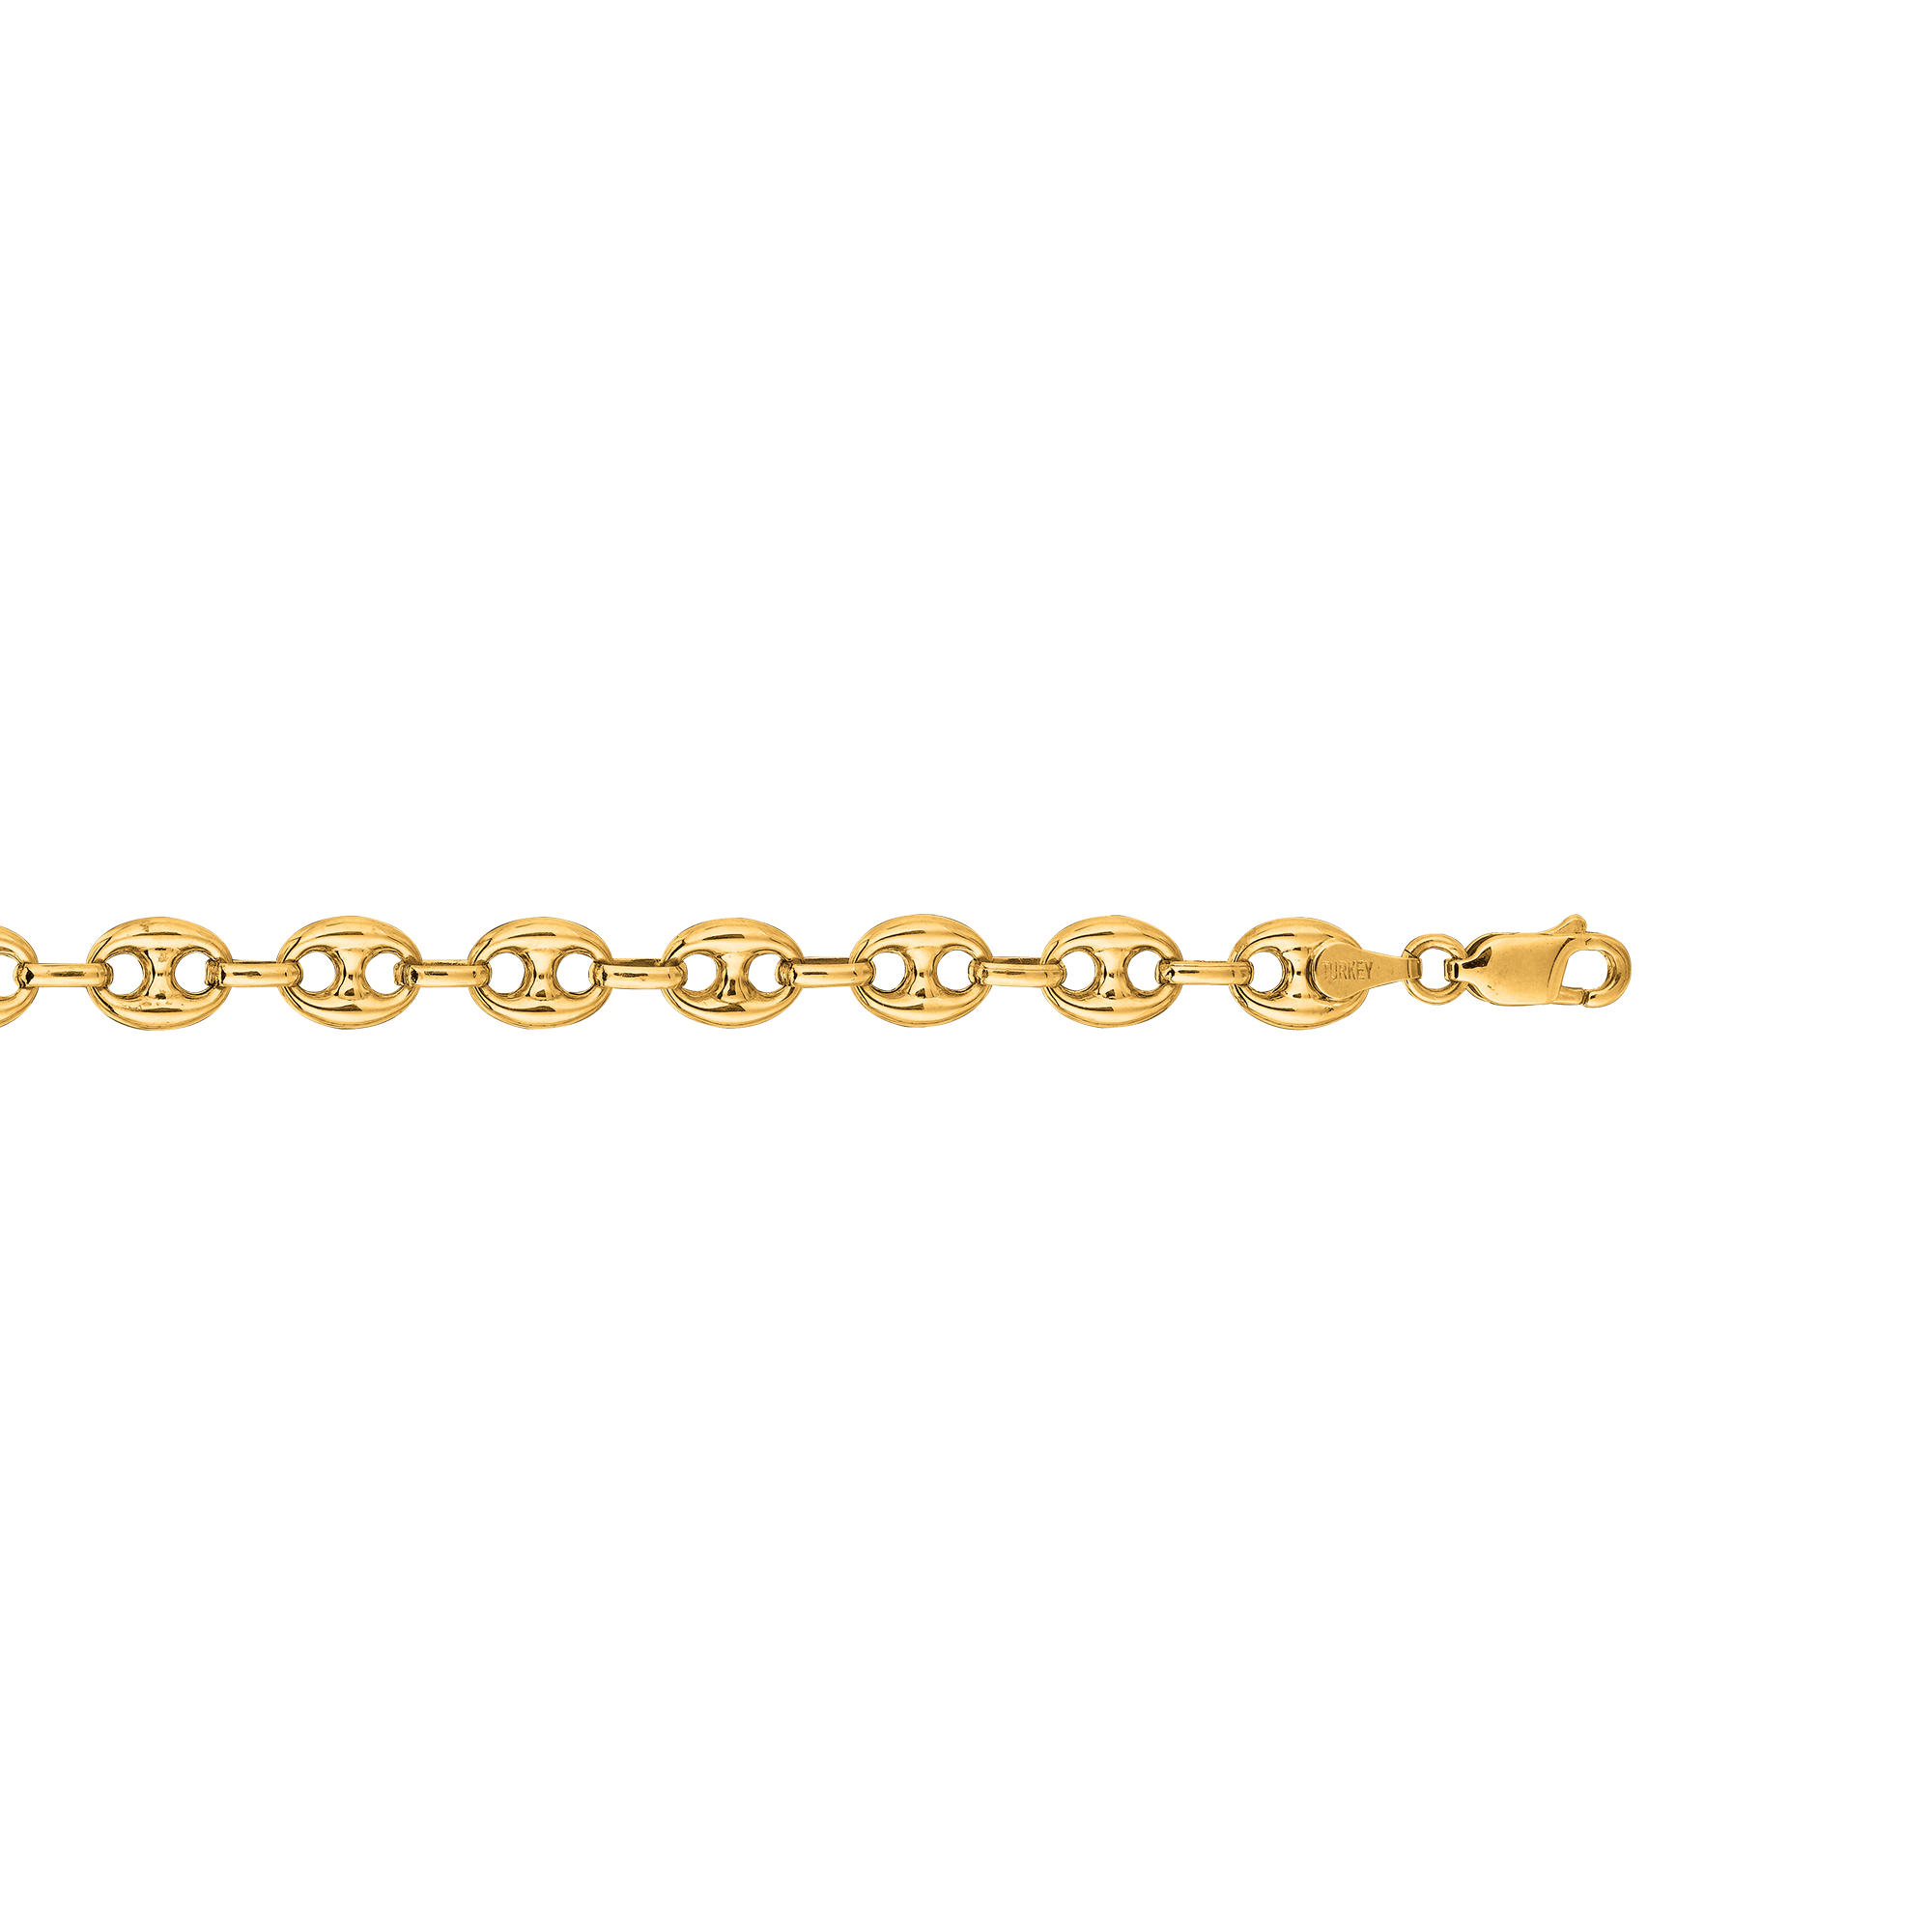 Hollow 14k Gold Gucci Chain For Men & Women Mariner Puffed 11mm Wide Yellow Image